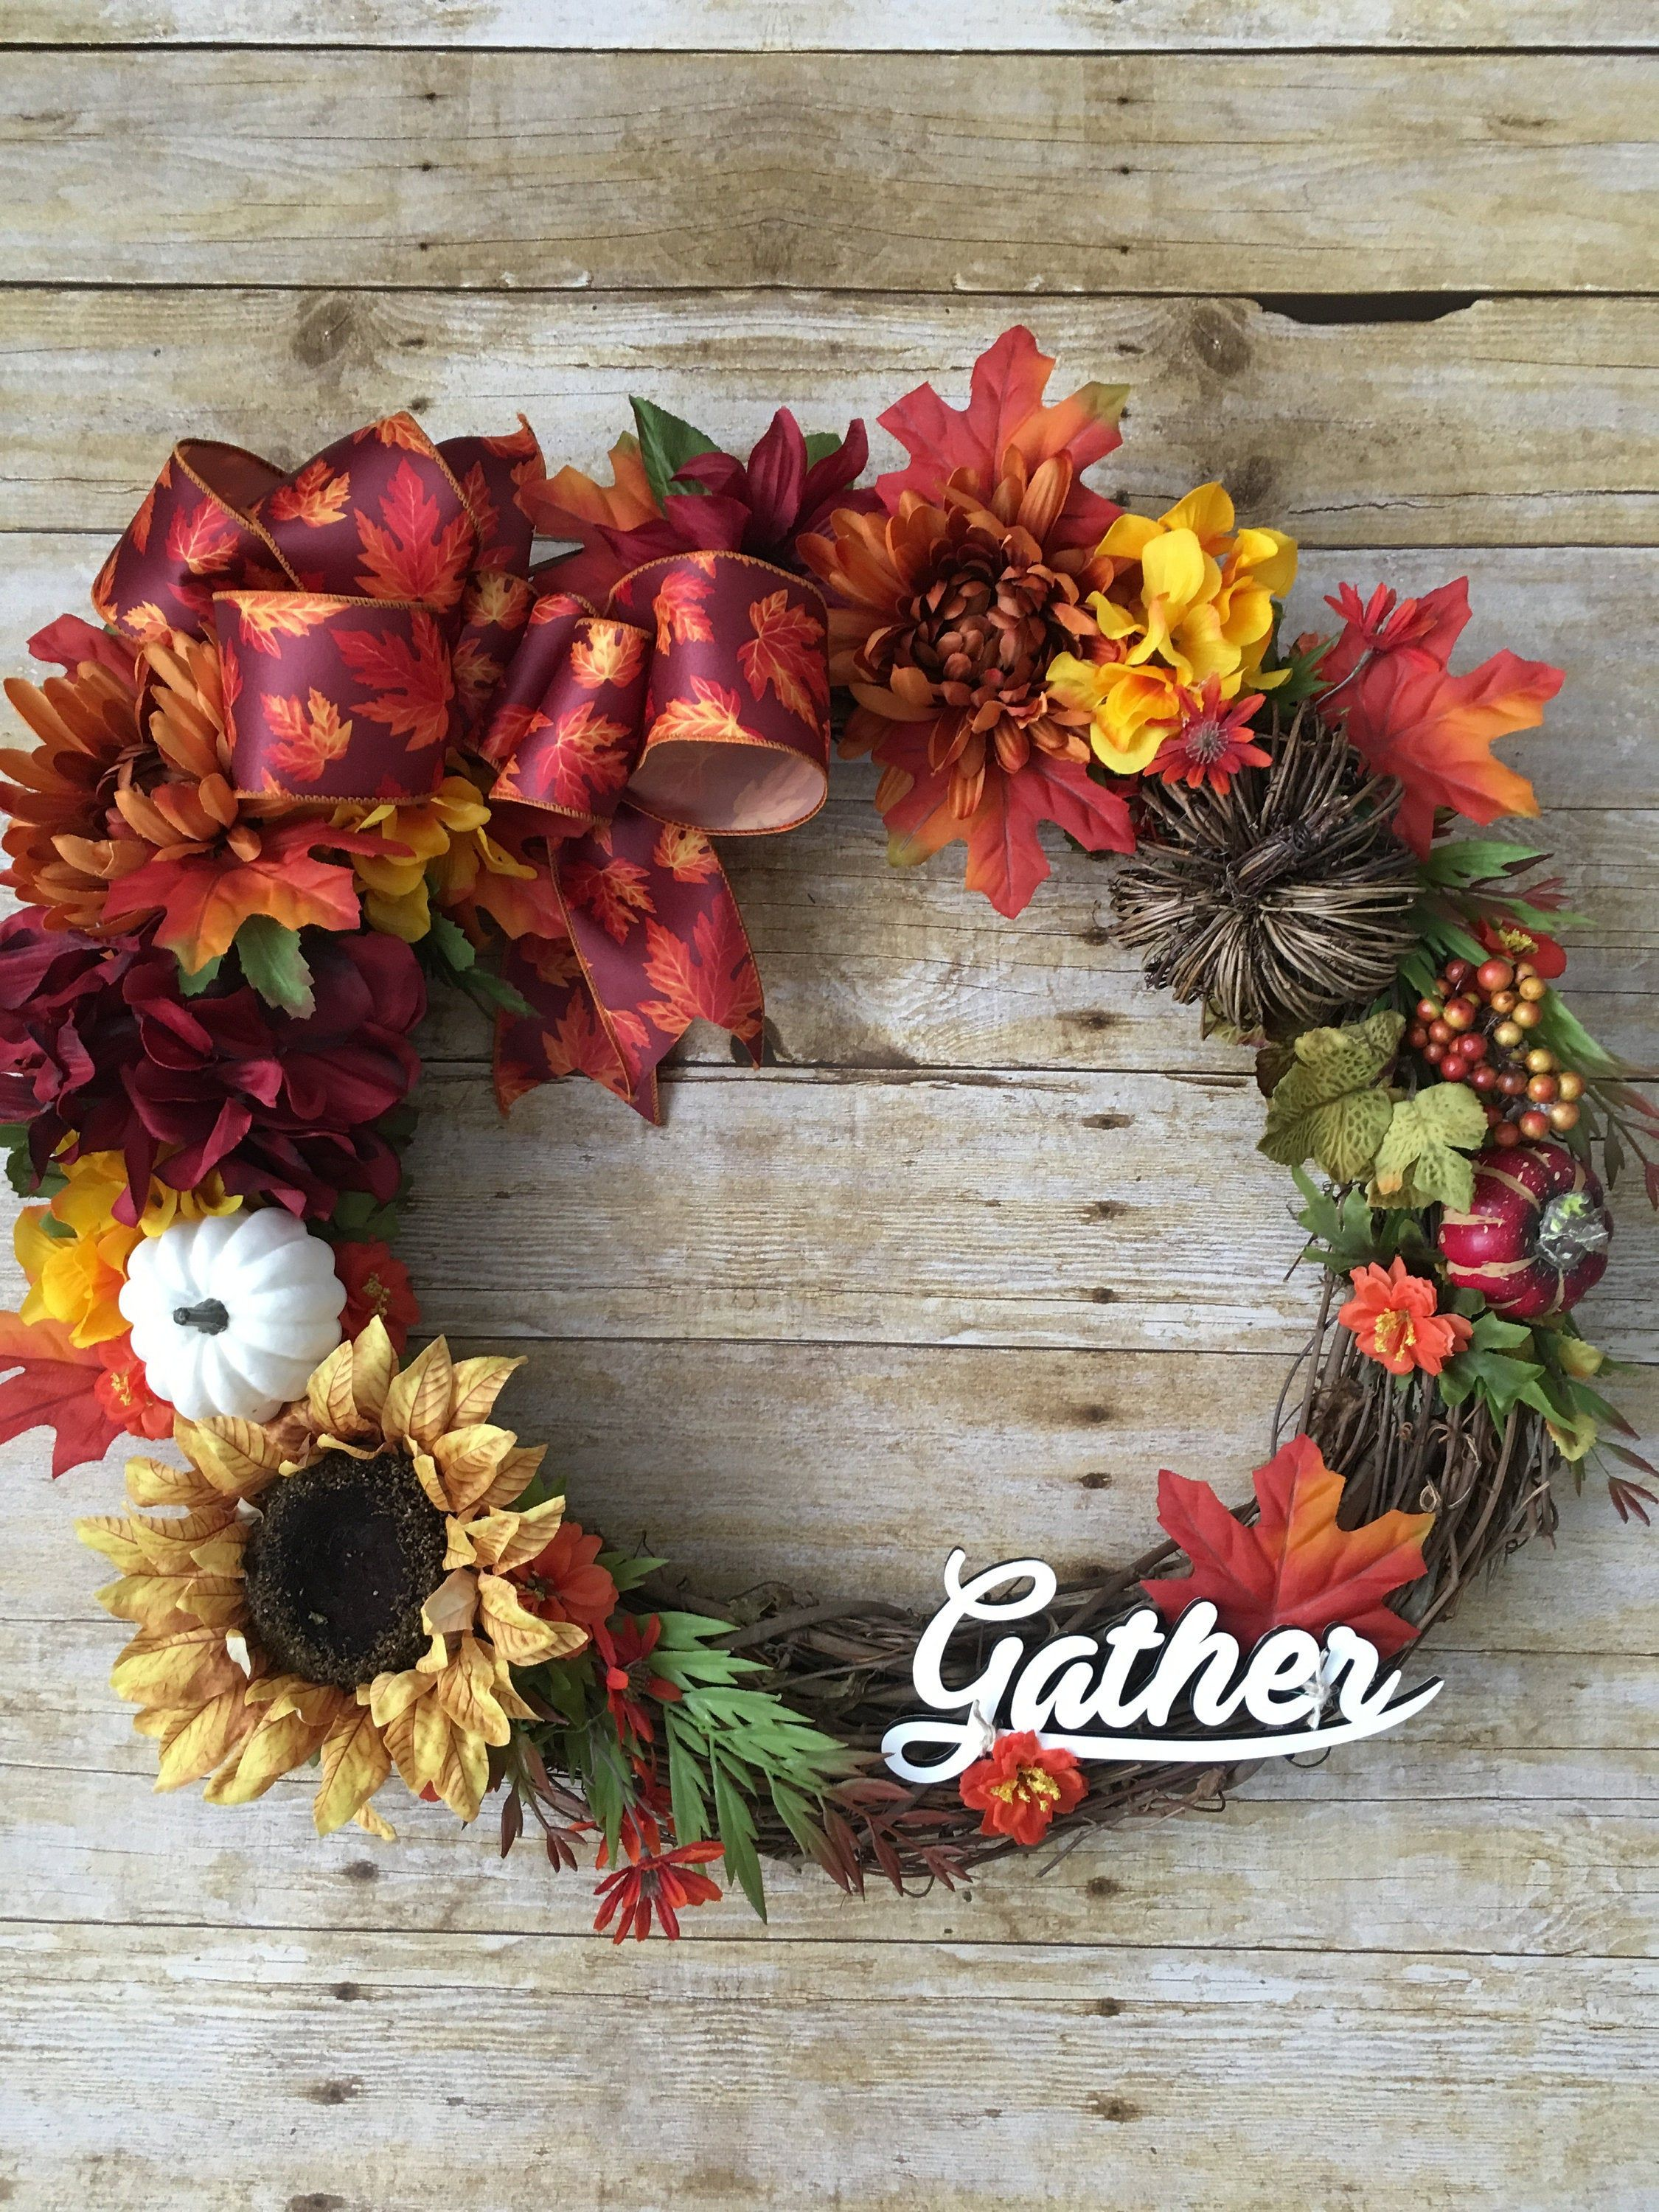 Photo of Fall Wreath, Fall Grapevine Wreath, Year Round Wreath, Front Door Wreath, Autumn Decor, Thanksgiving Decor, Gift for Her, Gather Sign